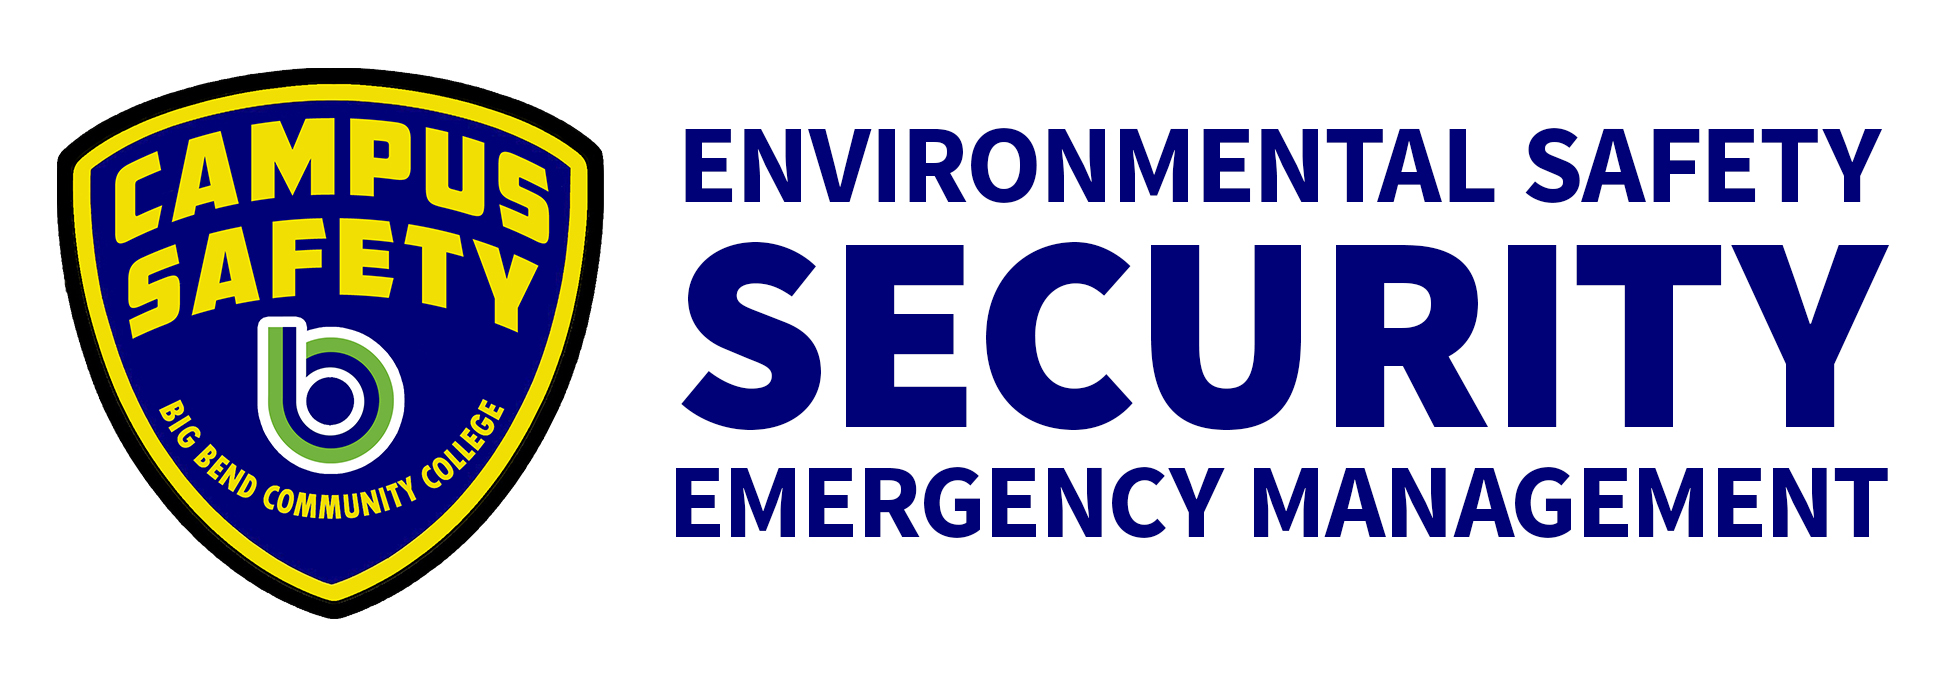 Campus Safety: environmental safety, security, emergency management